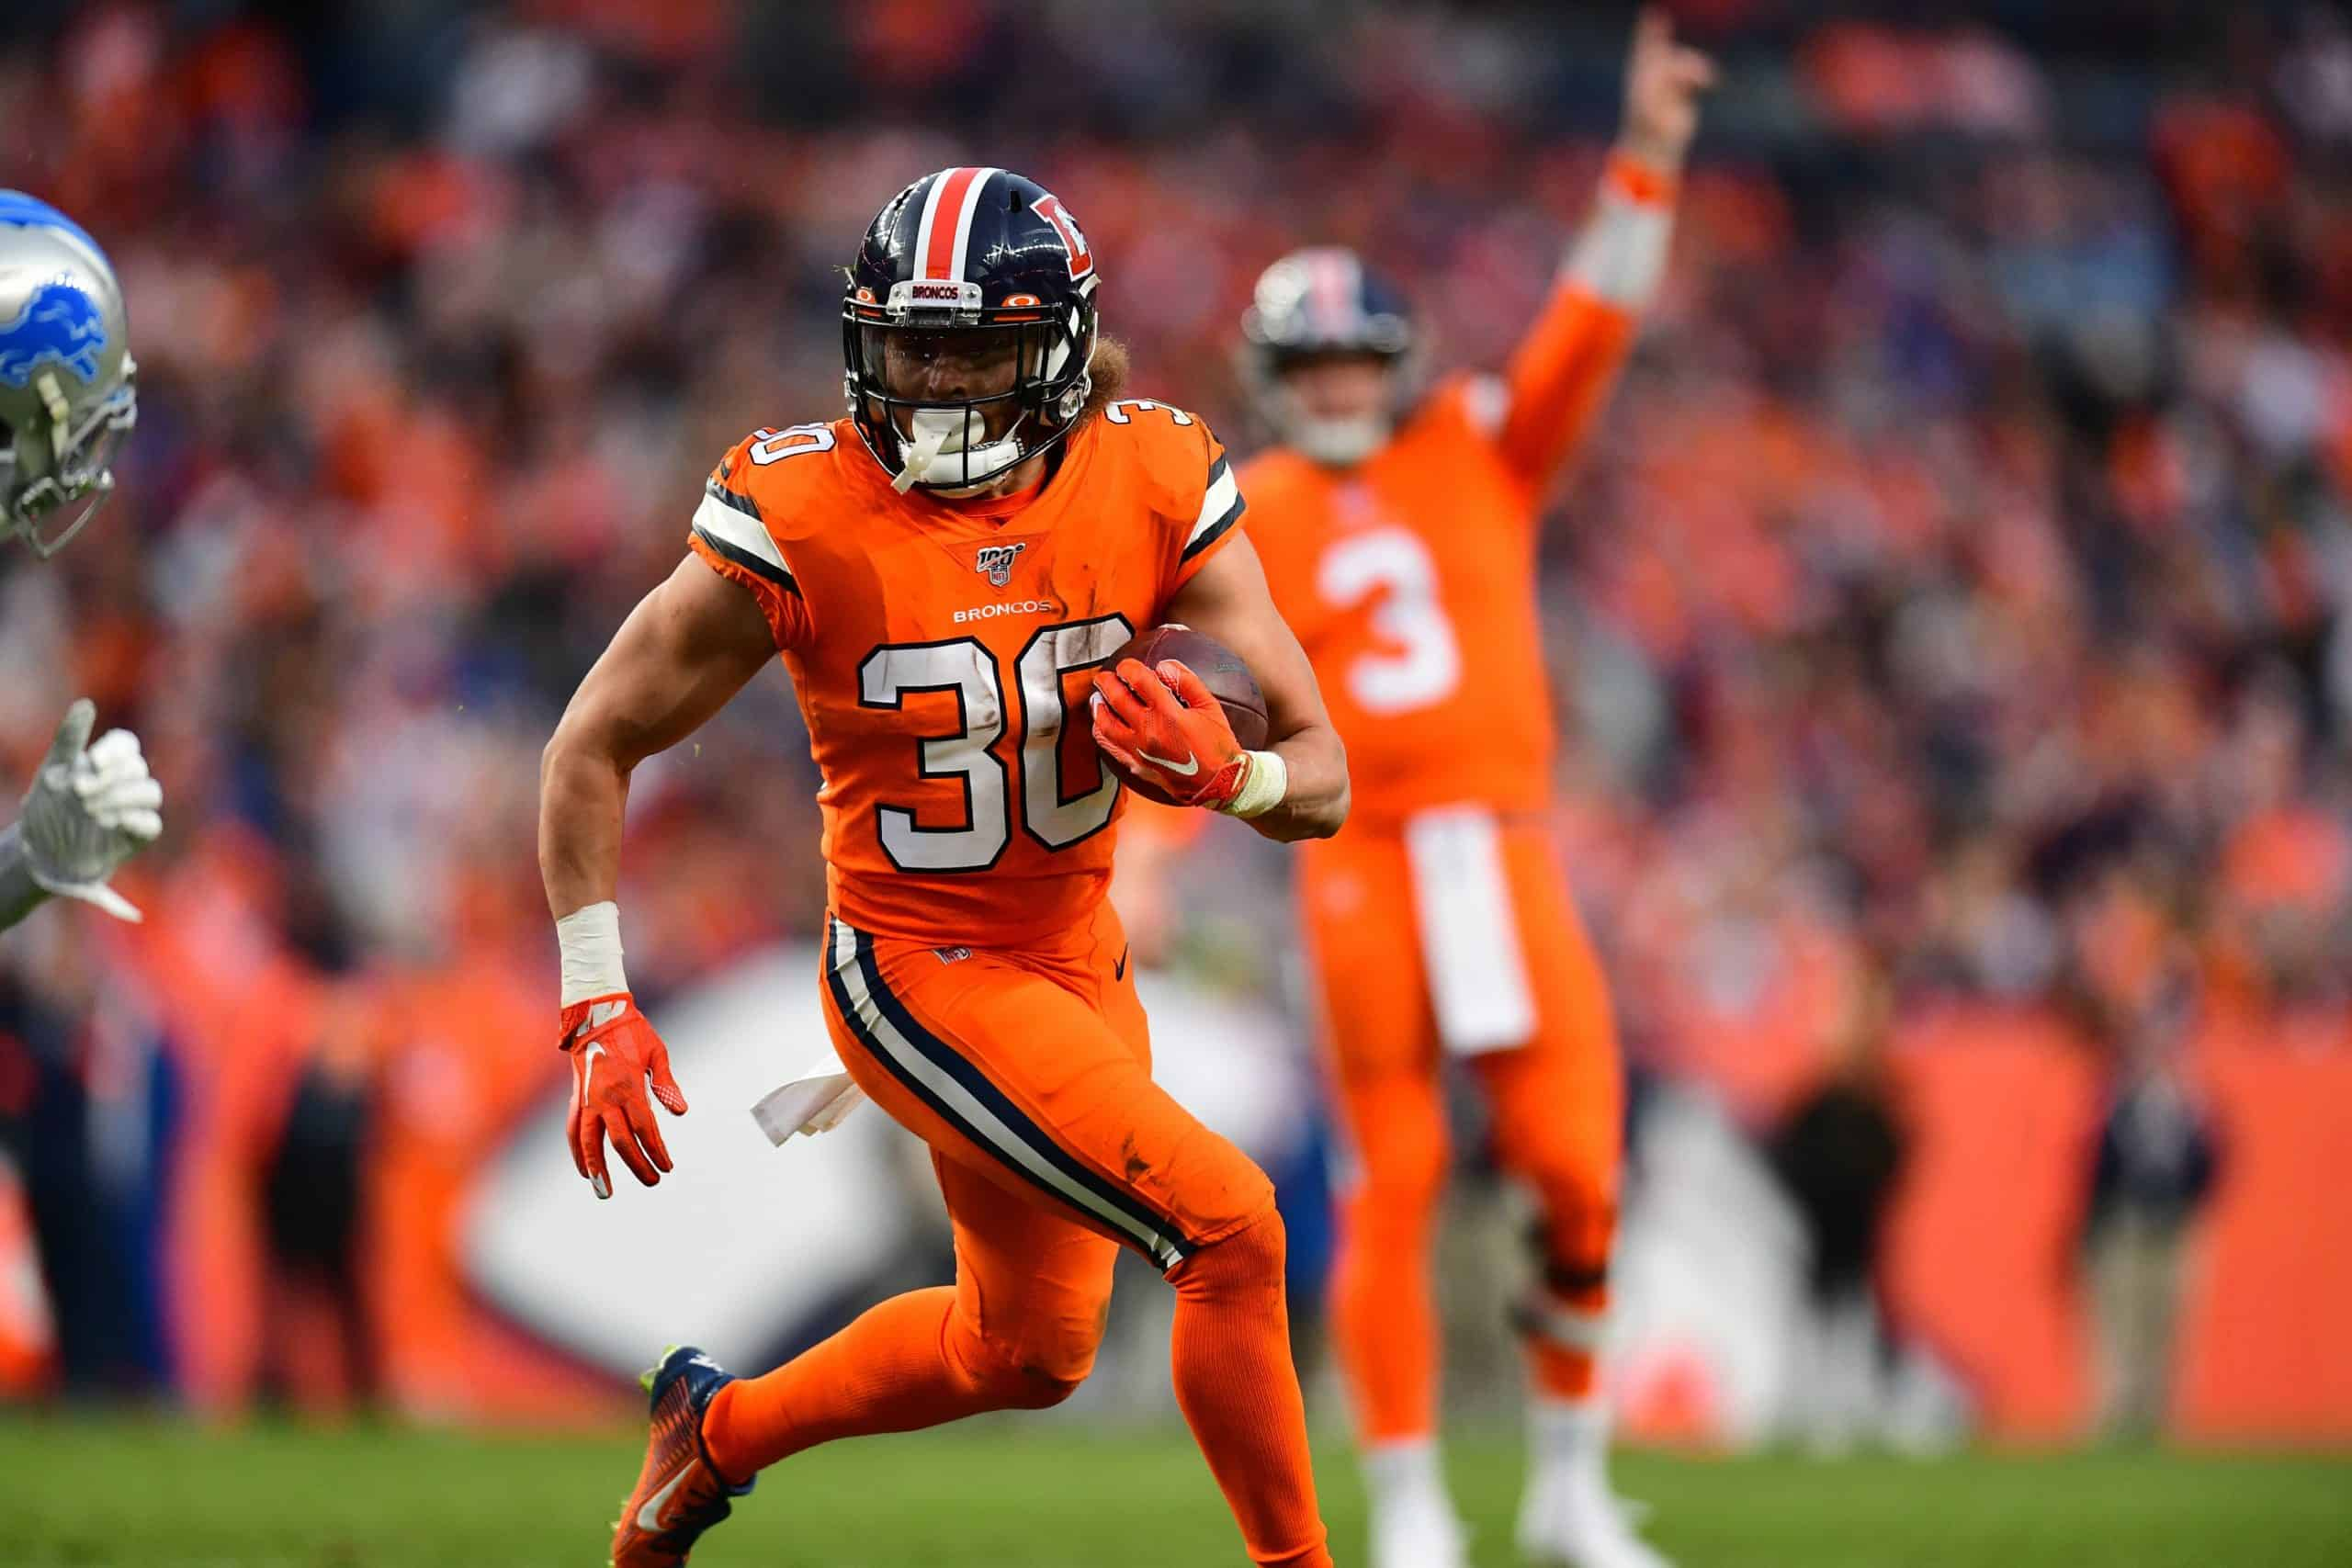 Can Phillip Lindsay break into the next level in 2020?